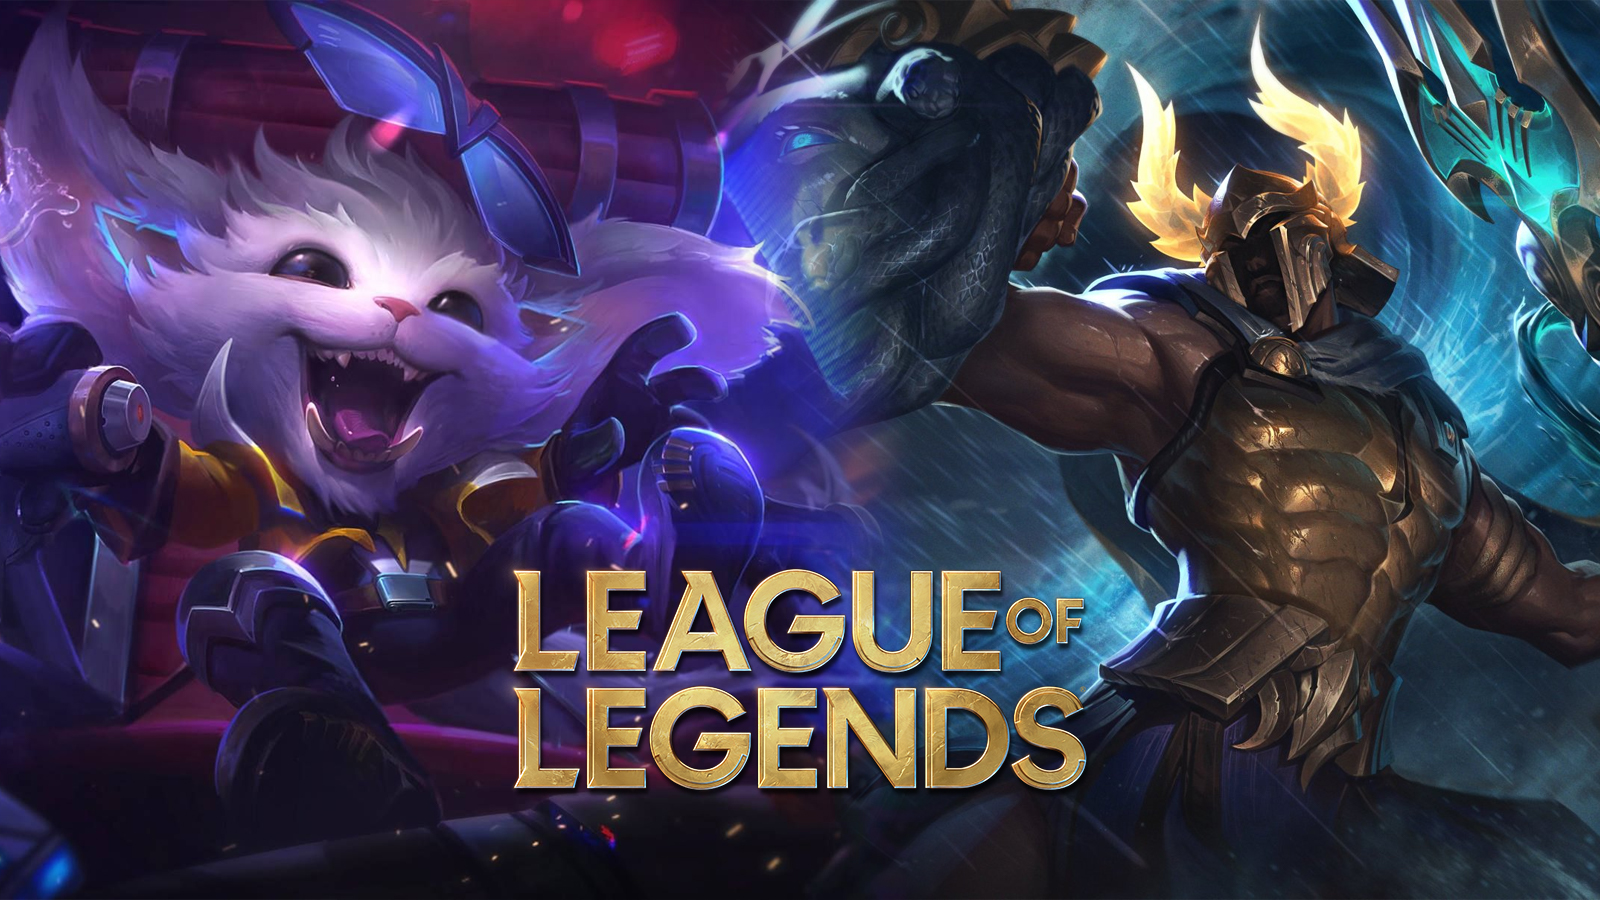 Super Galaxy Gnar and Perseus Pantheon in League of Legends